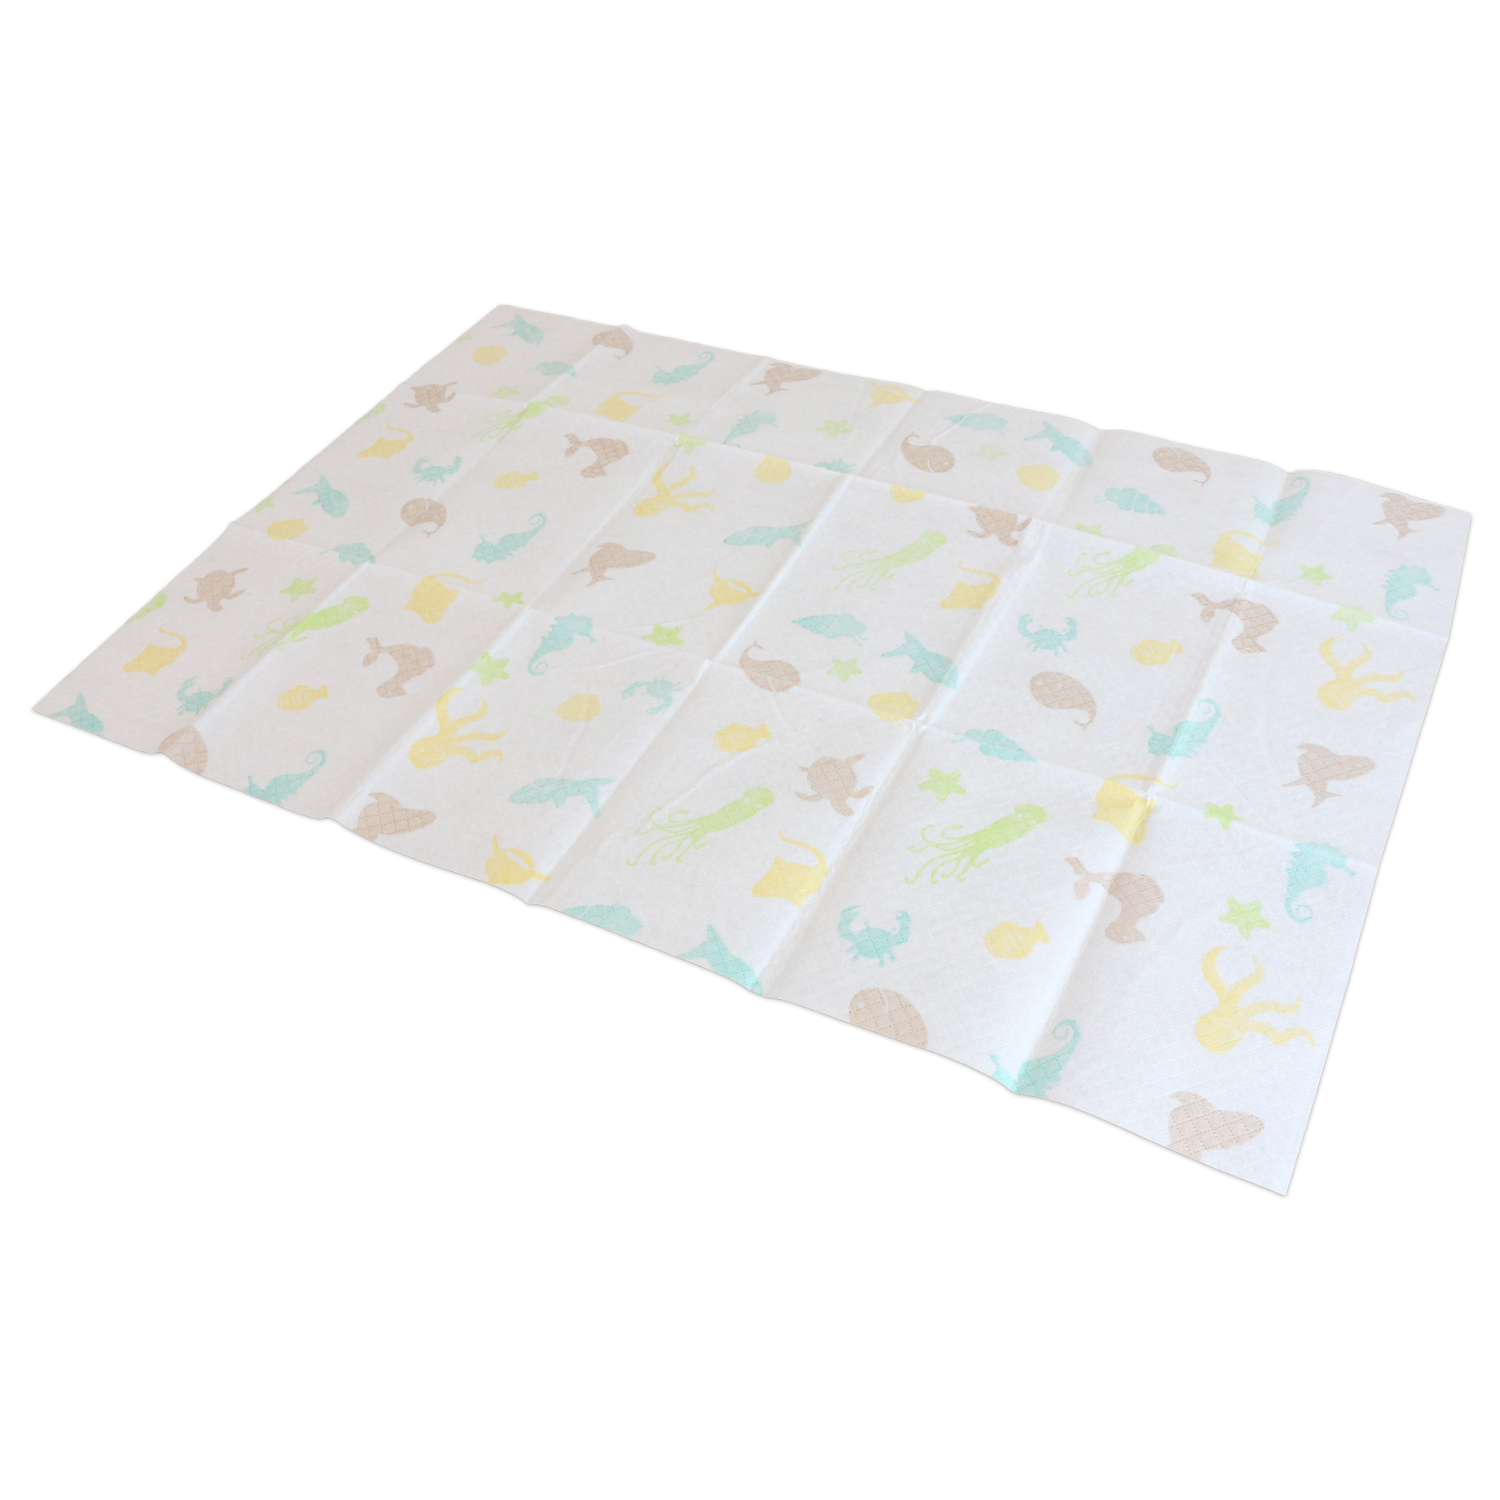 Emmzoe Disposable Sanitary Diaper Changing Table Mat Pads Leakproof Soft